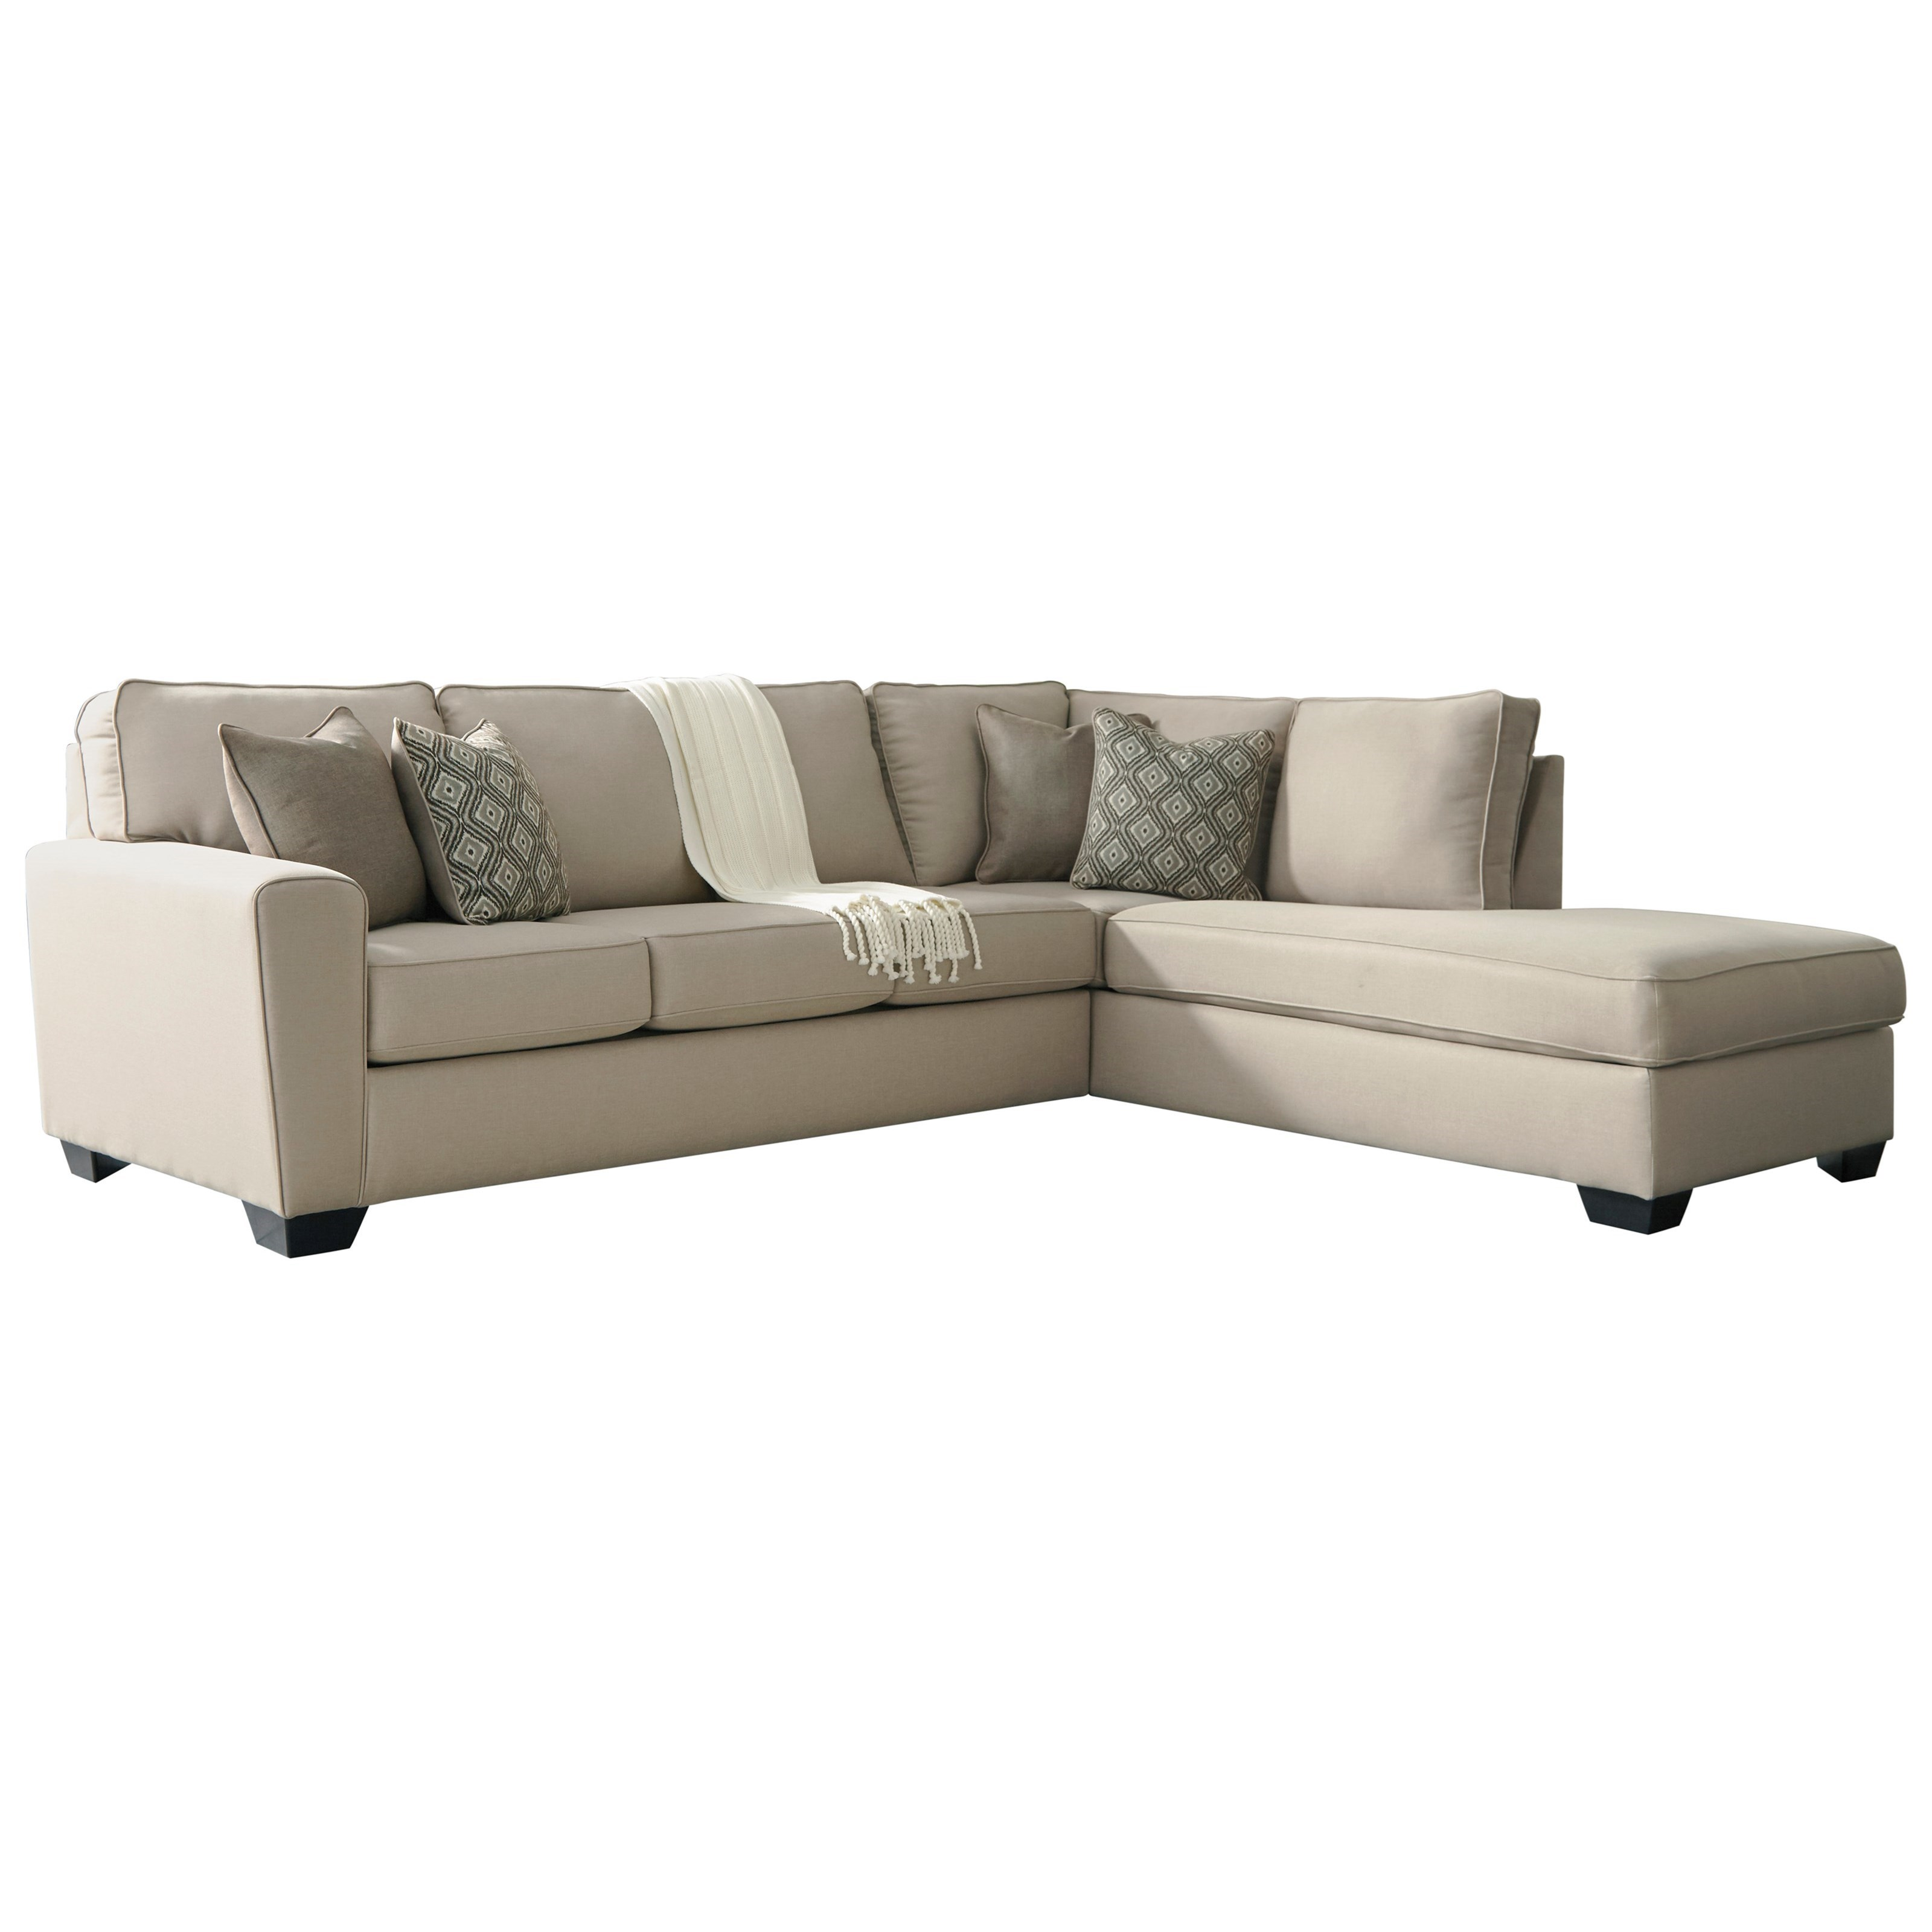 Contemporary Sectional: Benchcraft Calicho Contemporary Sectional With Right